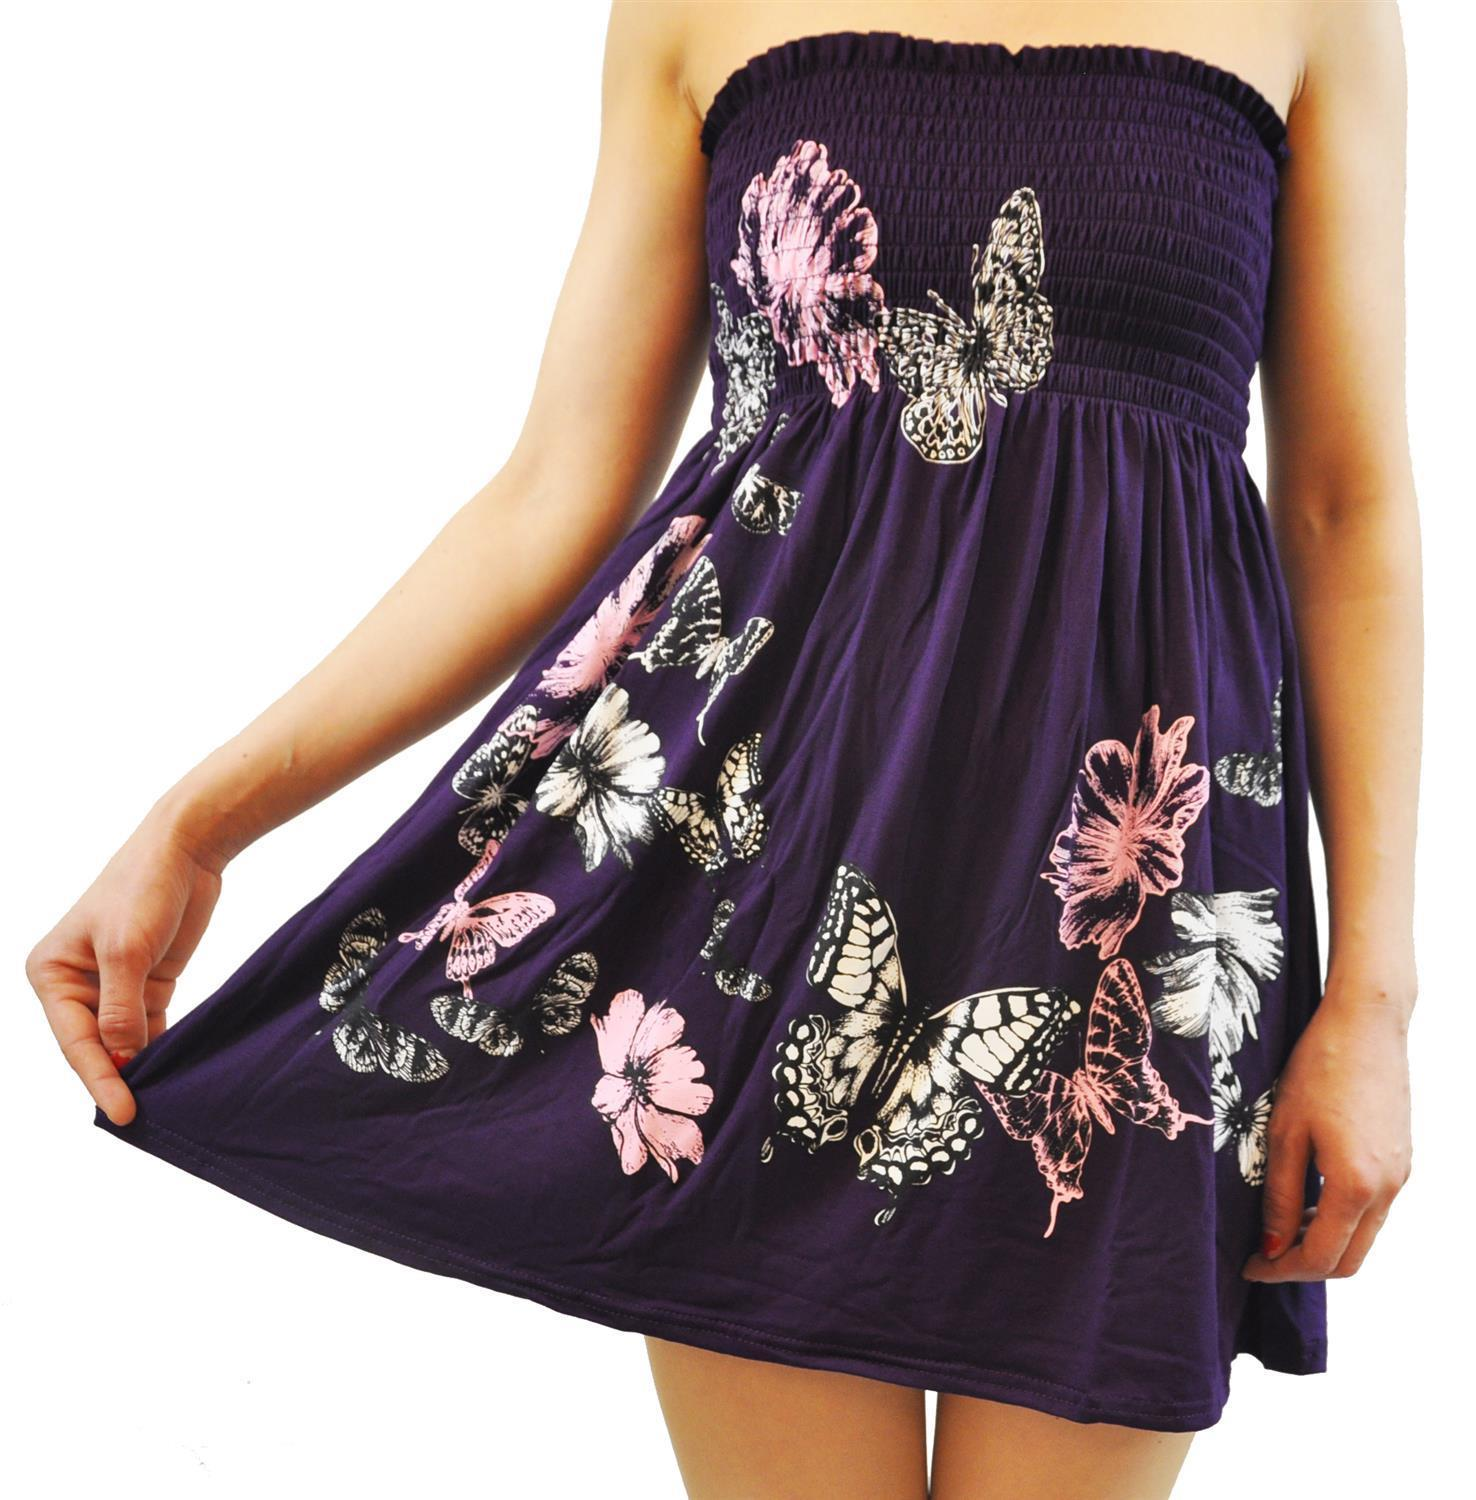 cec1484c192 New Womens Plus Size Purple Floral Leaves Sheering Strapless Boob Tube Mini  Tops. From £ 8.99